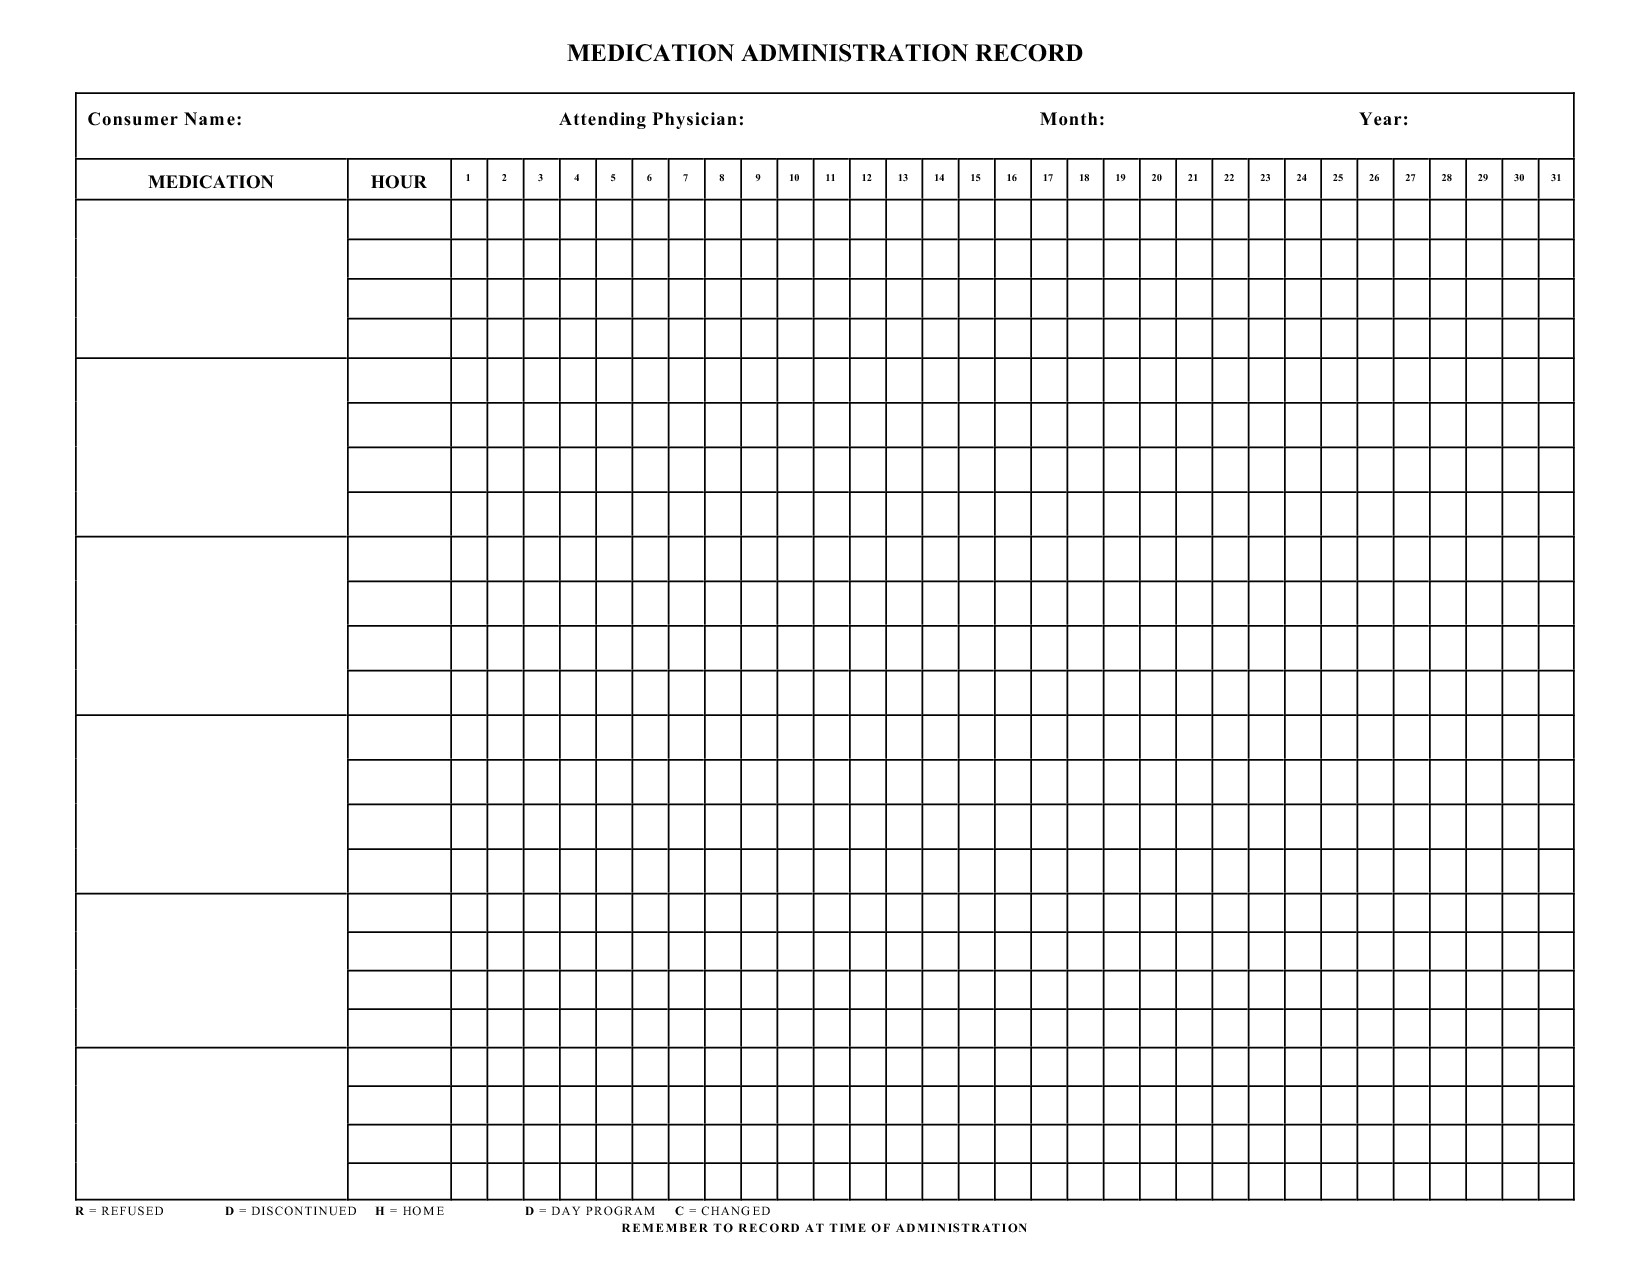 Does Blank Card Work with Pills Blank Medication Administration Record Template with Images